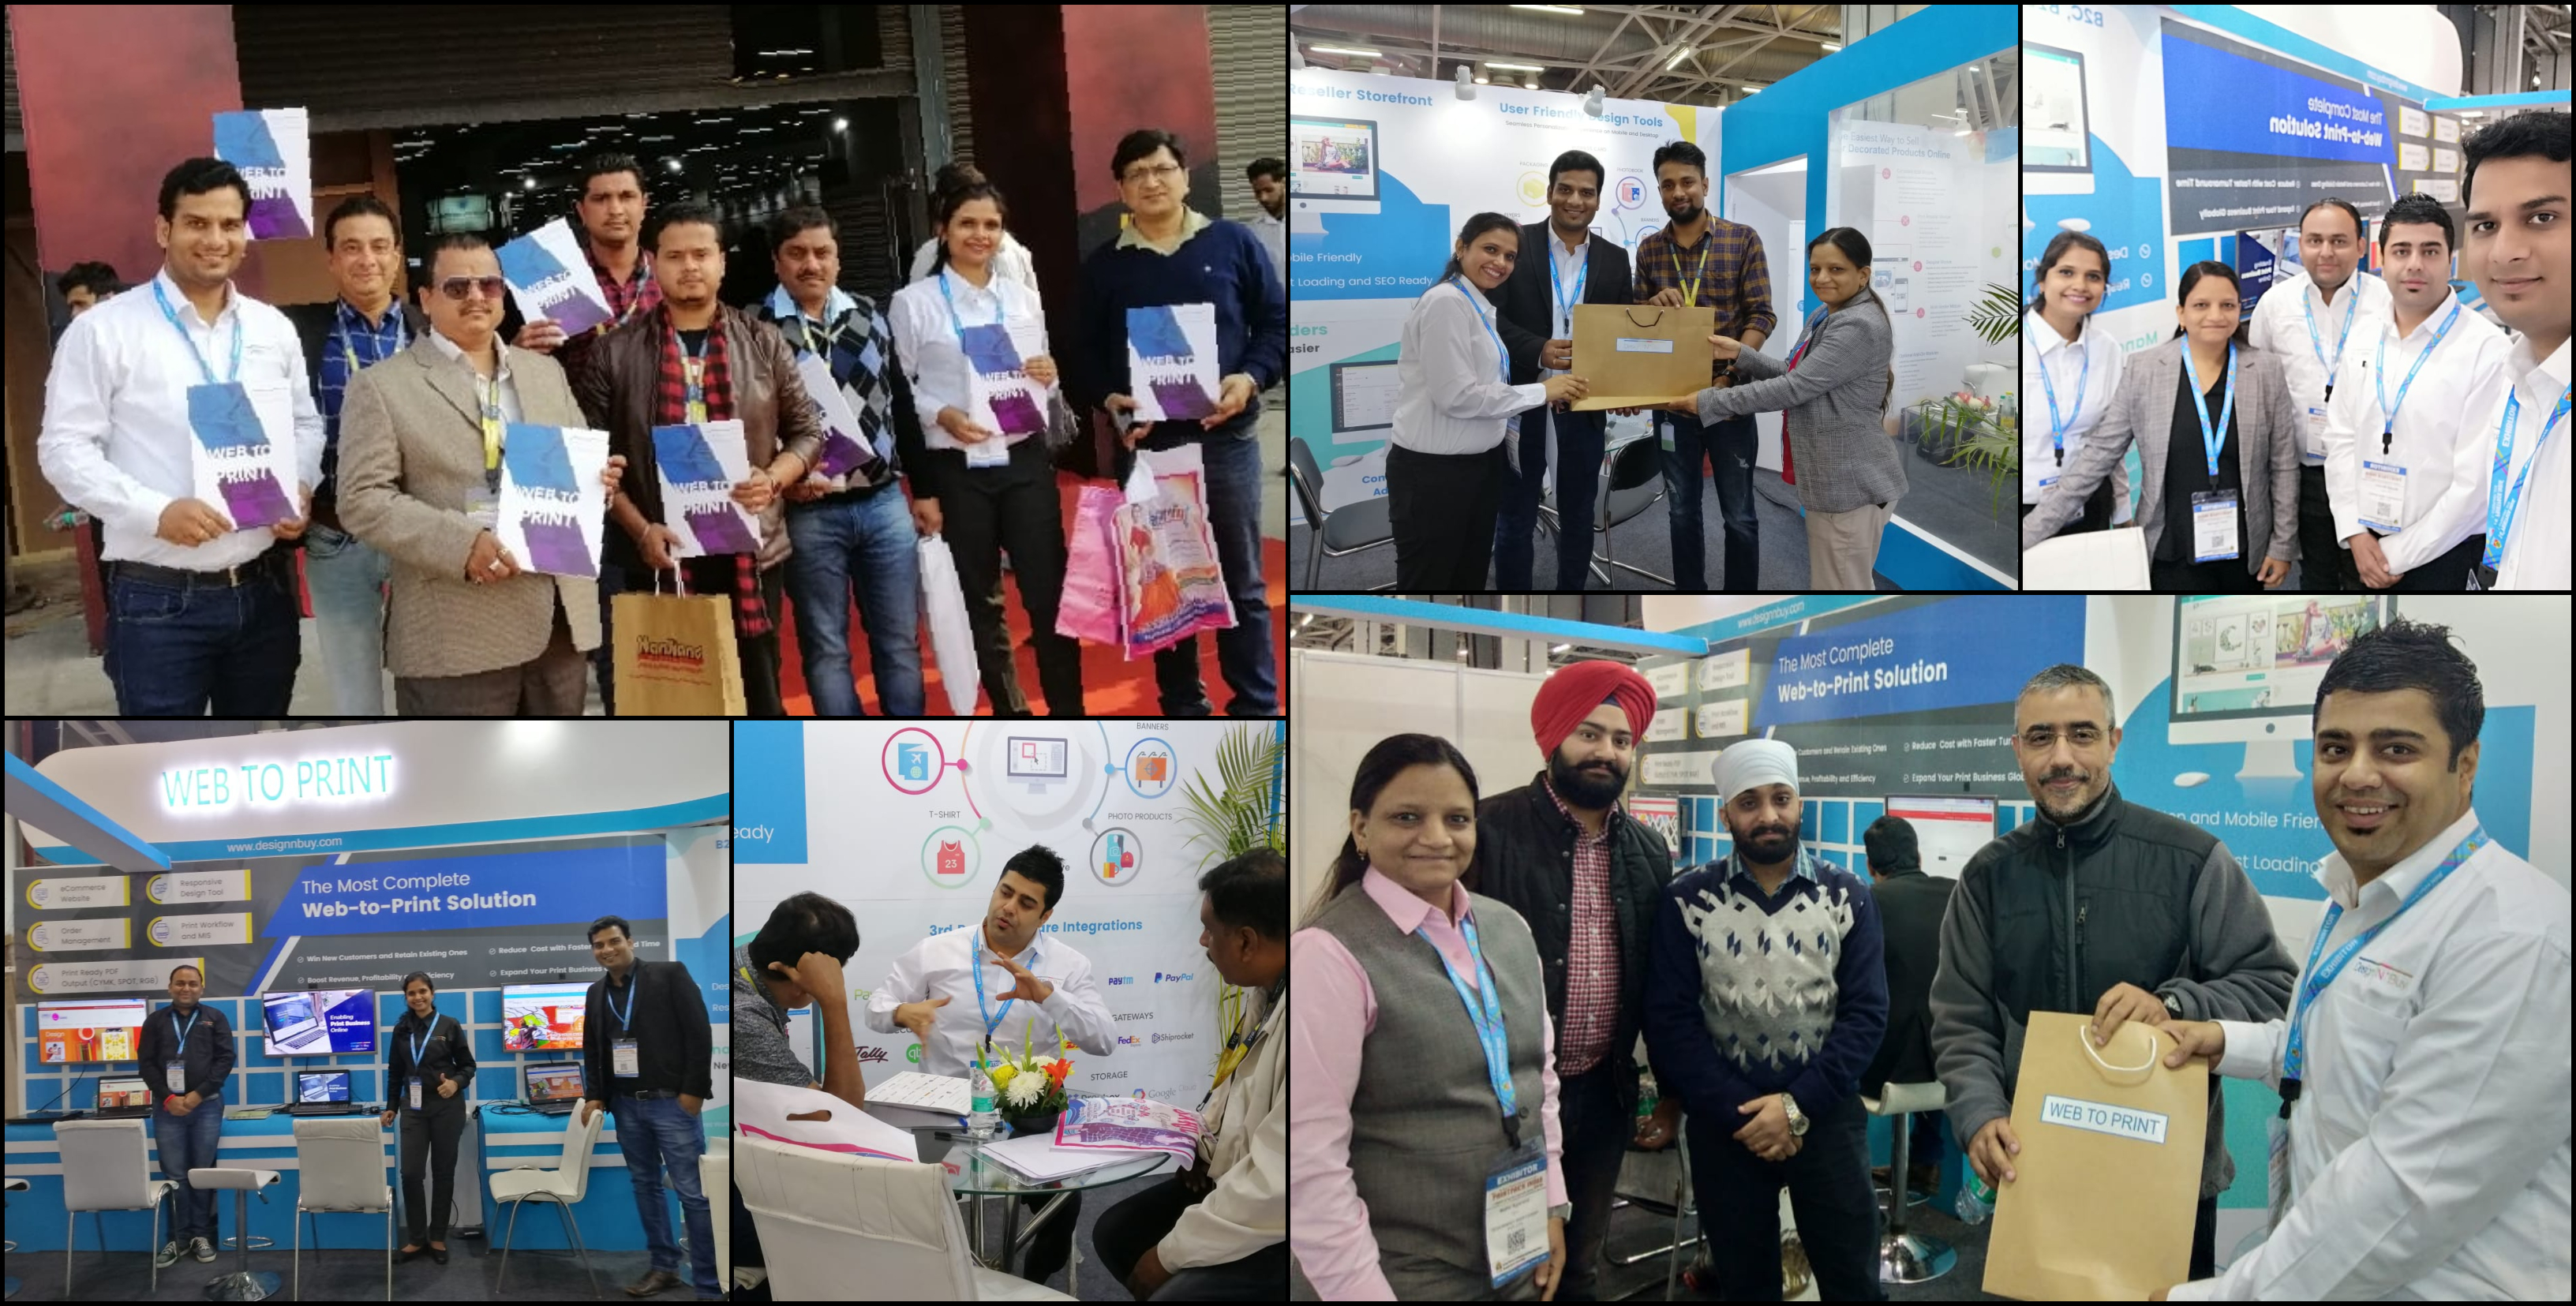 Design'N'Buy at Print Pack 2019, India - Design 'N' Buy